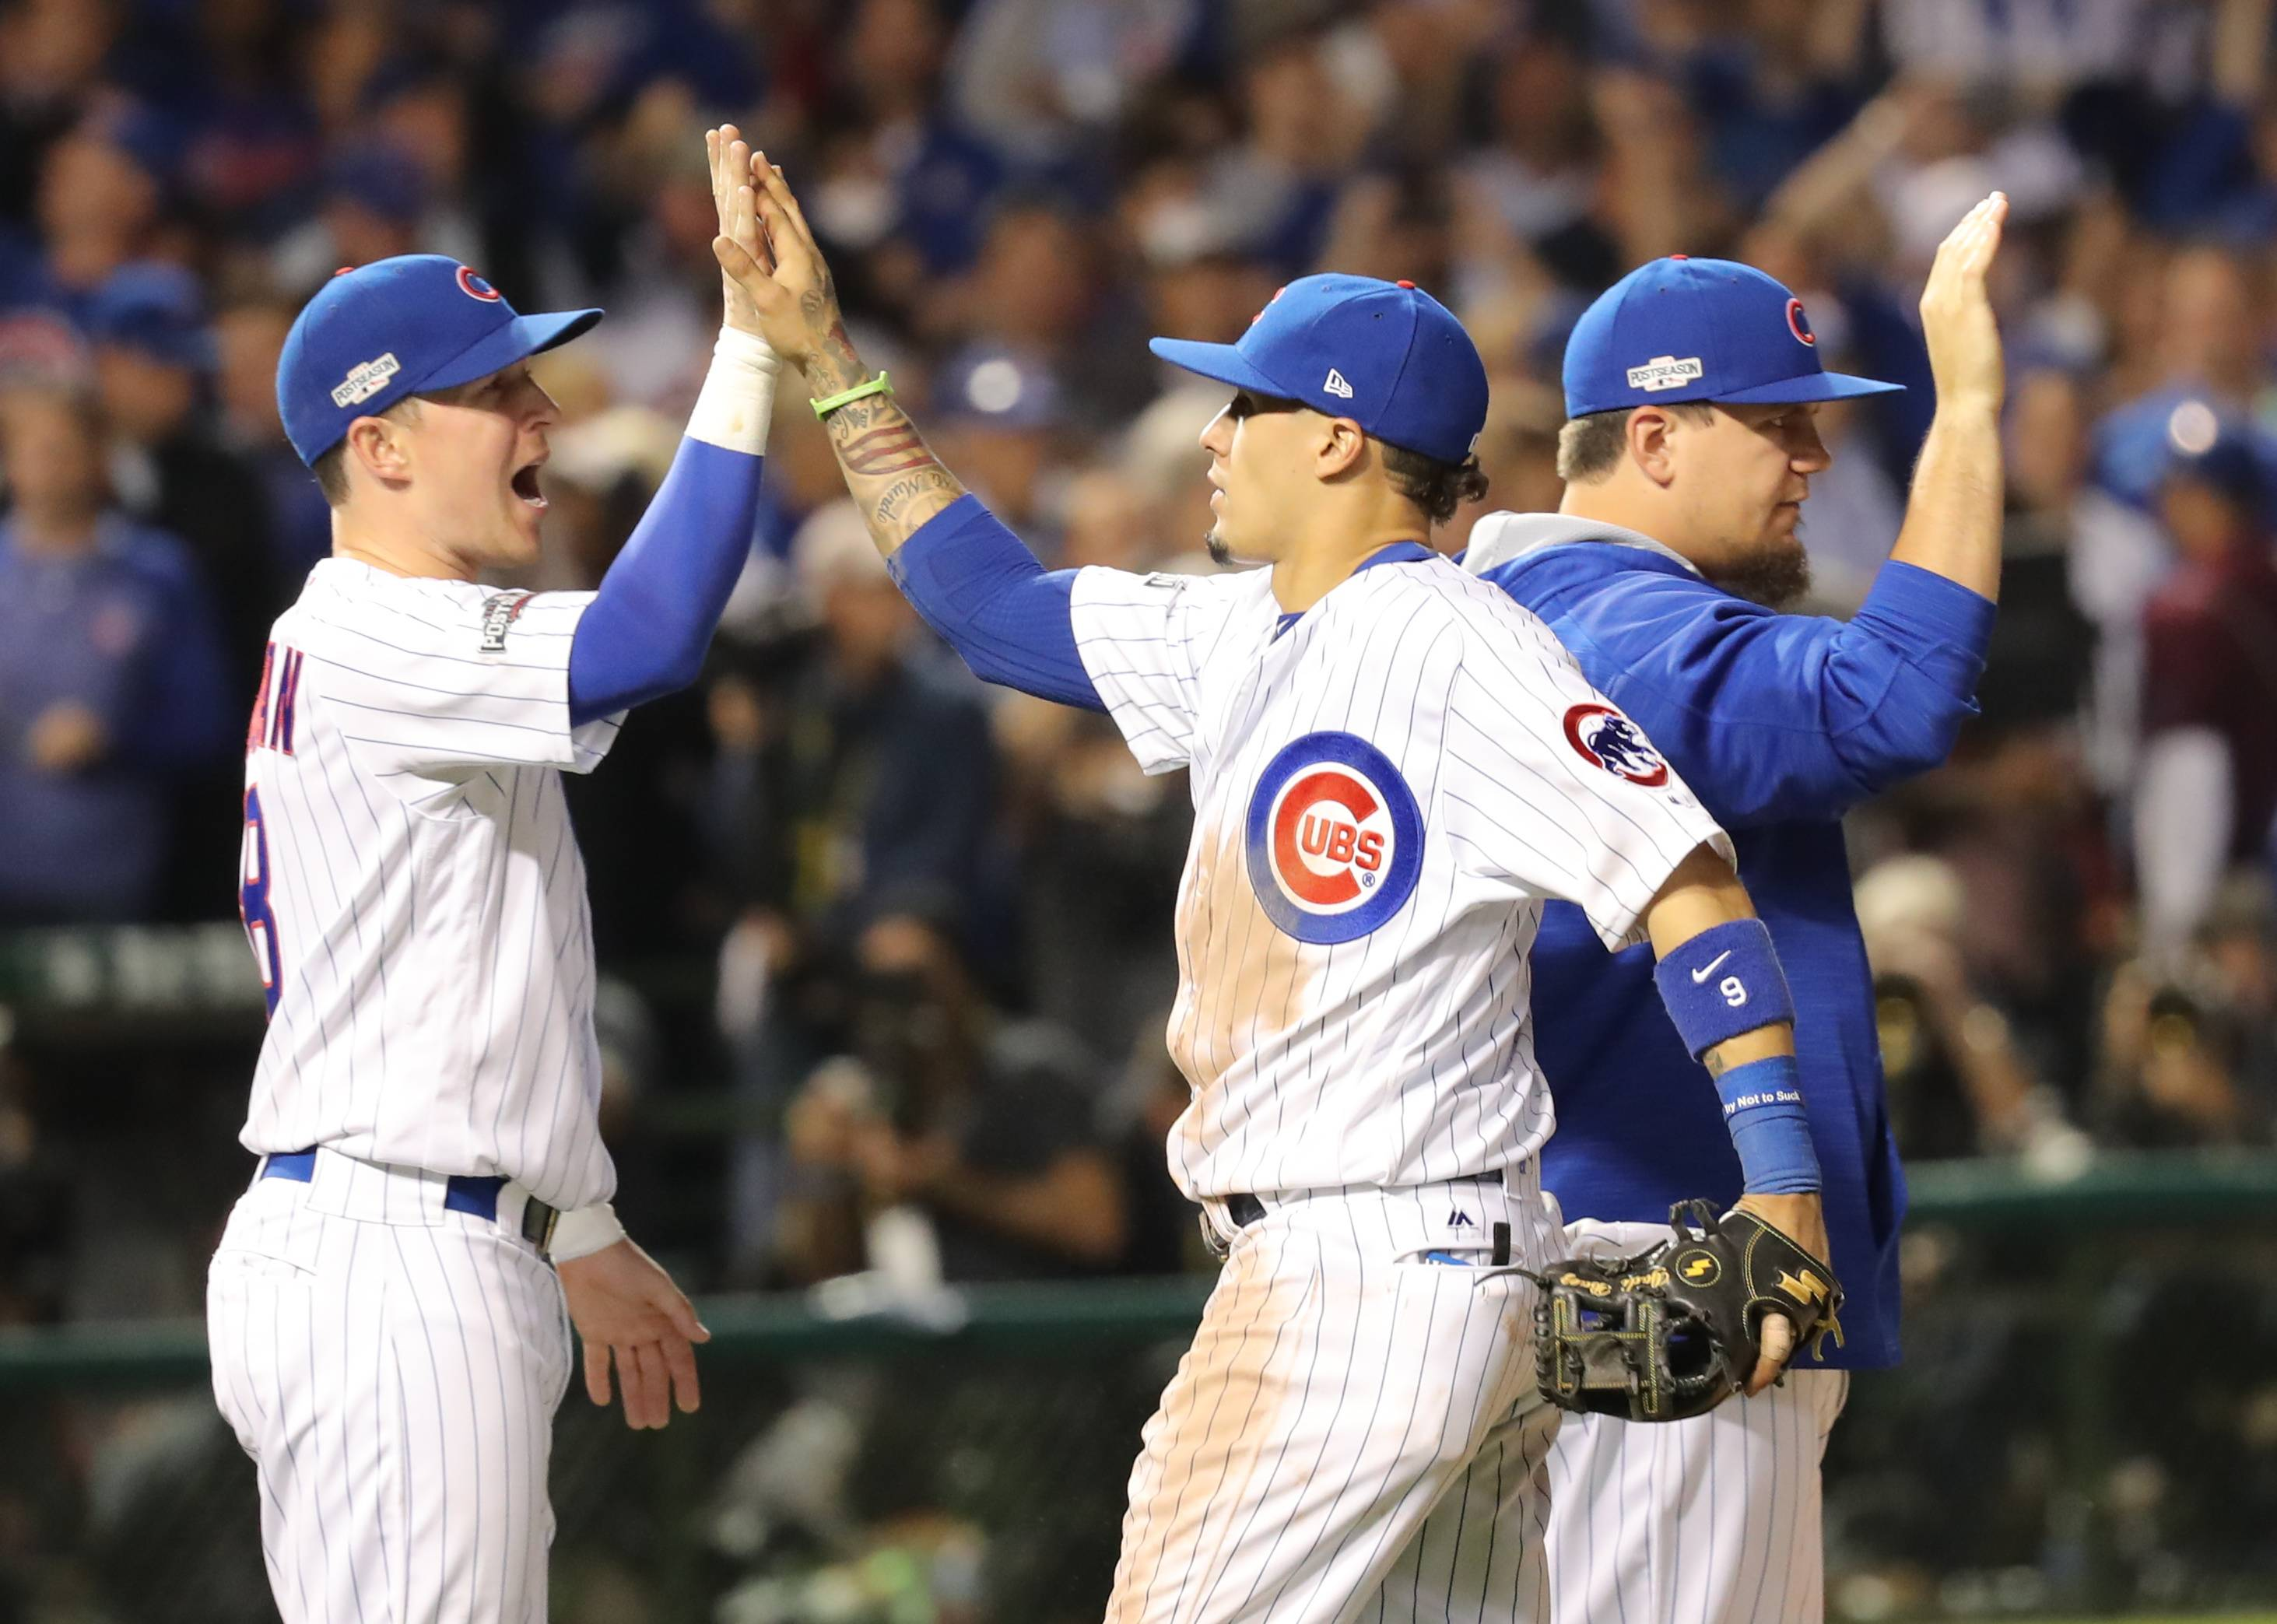 Chicago Cubs Chris Coghlan and Chicago Cubs Javier Baez celebrate after their win during game 1 of the National League championship series against the Los Angeles Dodgers at Wrigley Field in Chicago on Saturday, October, 15, 2016.